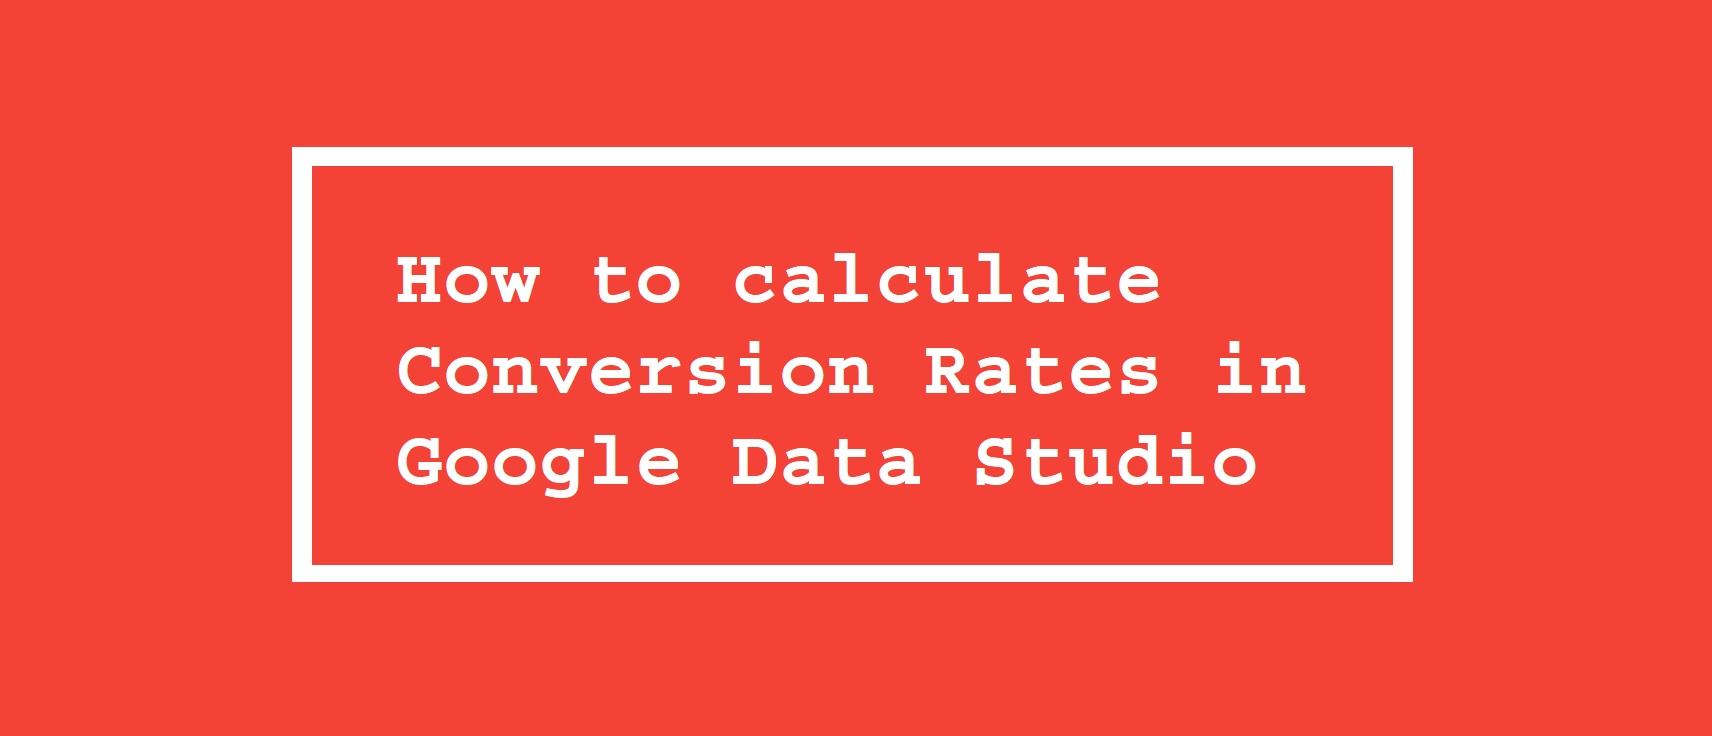 How to calculate Conversion Rates in Google Data Studio